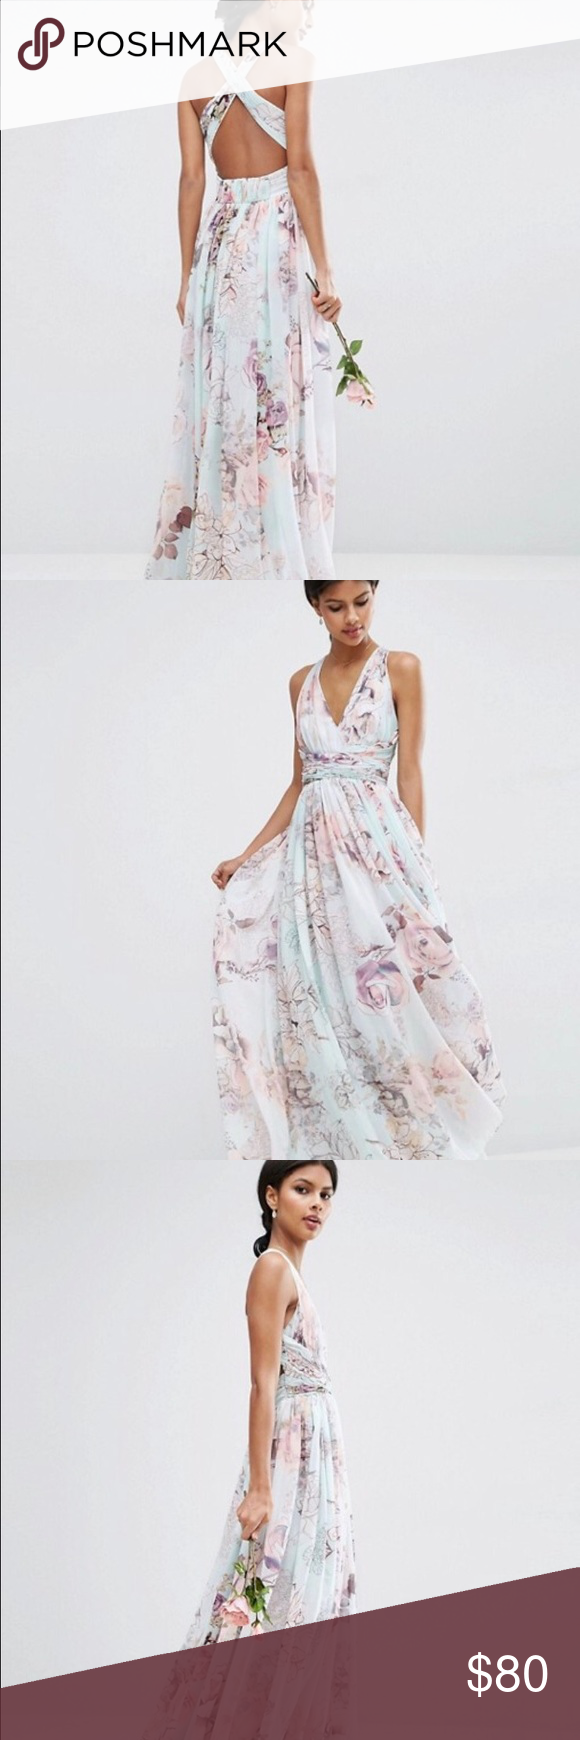 Floral print wedding guest dress  ASOS WEDDING Hollywood Maxi Dress Soft Rose Print NWT  Floral